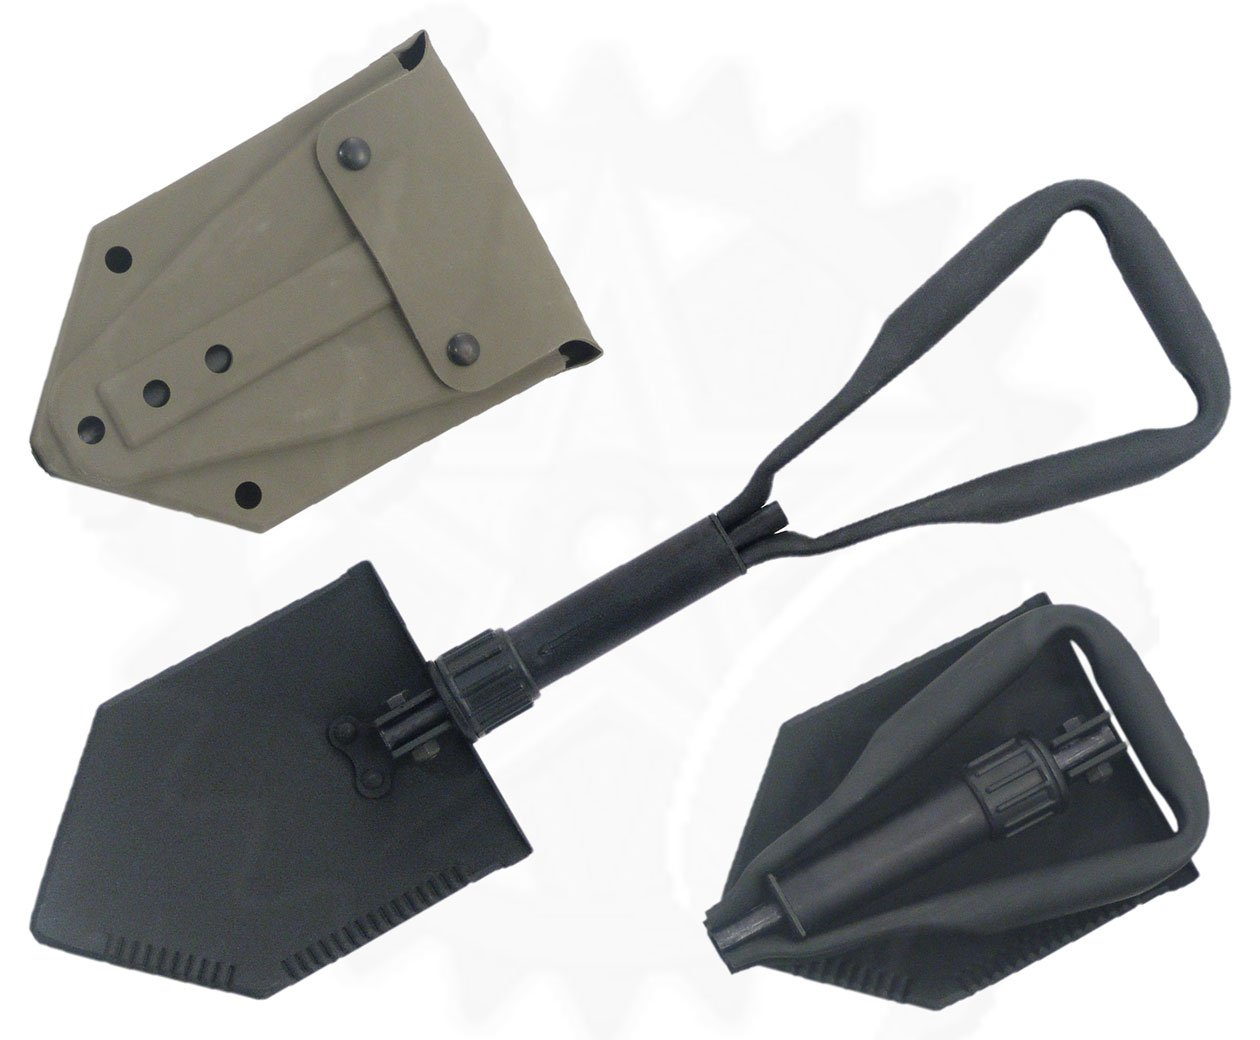 Military Issue Entrenching Tool with Tri-Fold